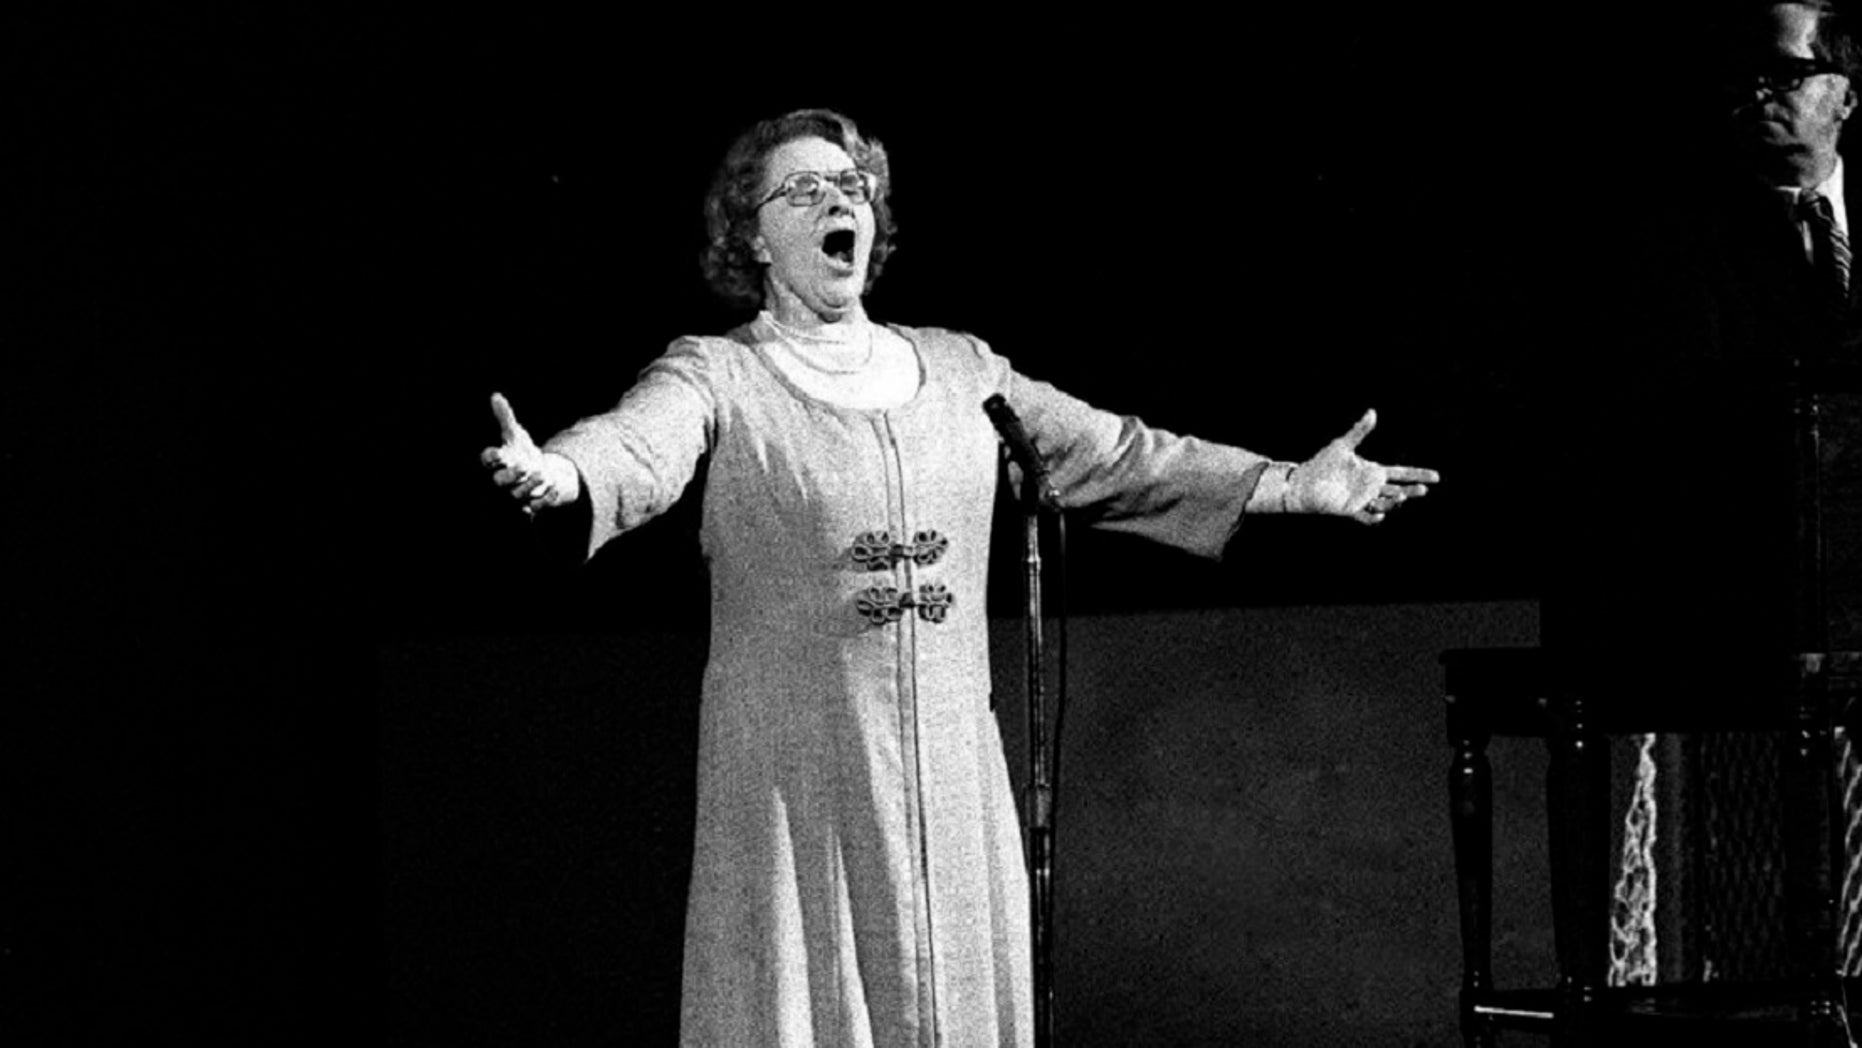 Flyers Cover Statue of Singer Kate Smith amid Racism Allegations